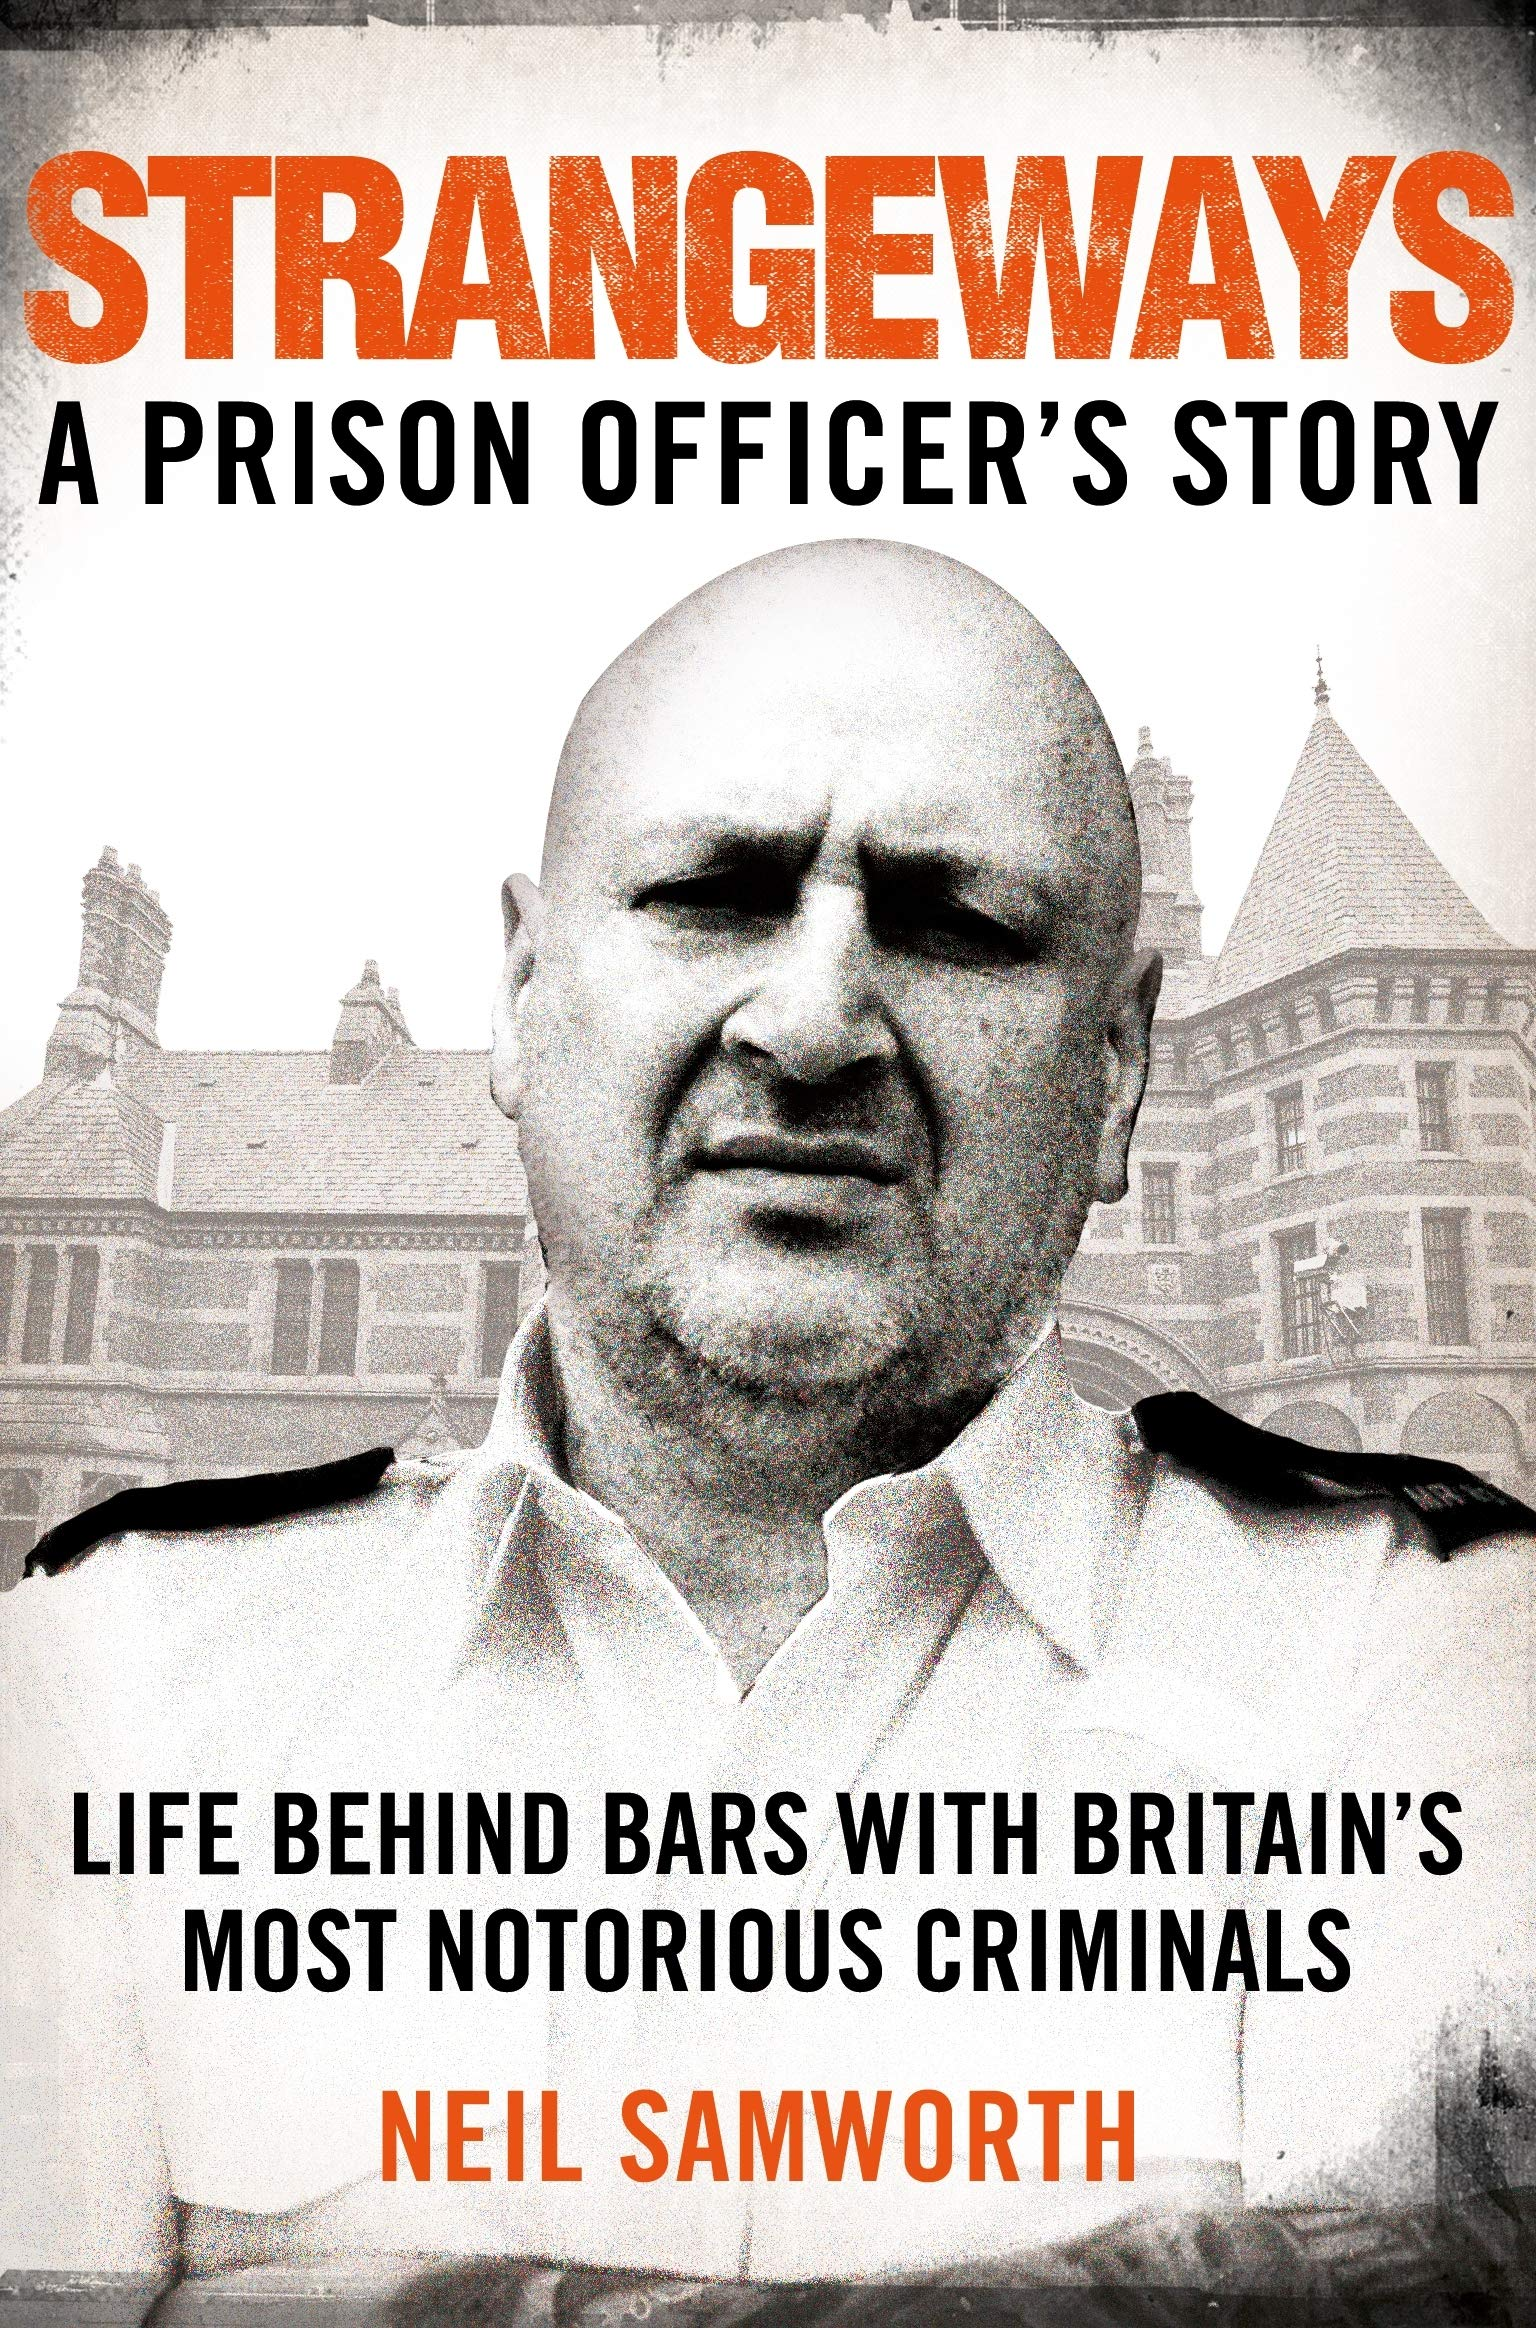 Strangeways: A Prison Officer's Story